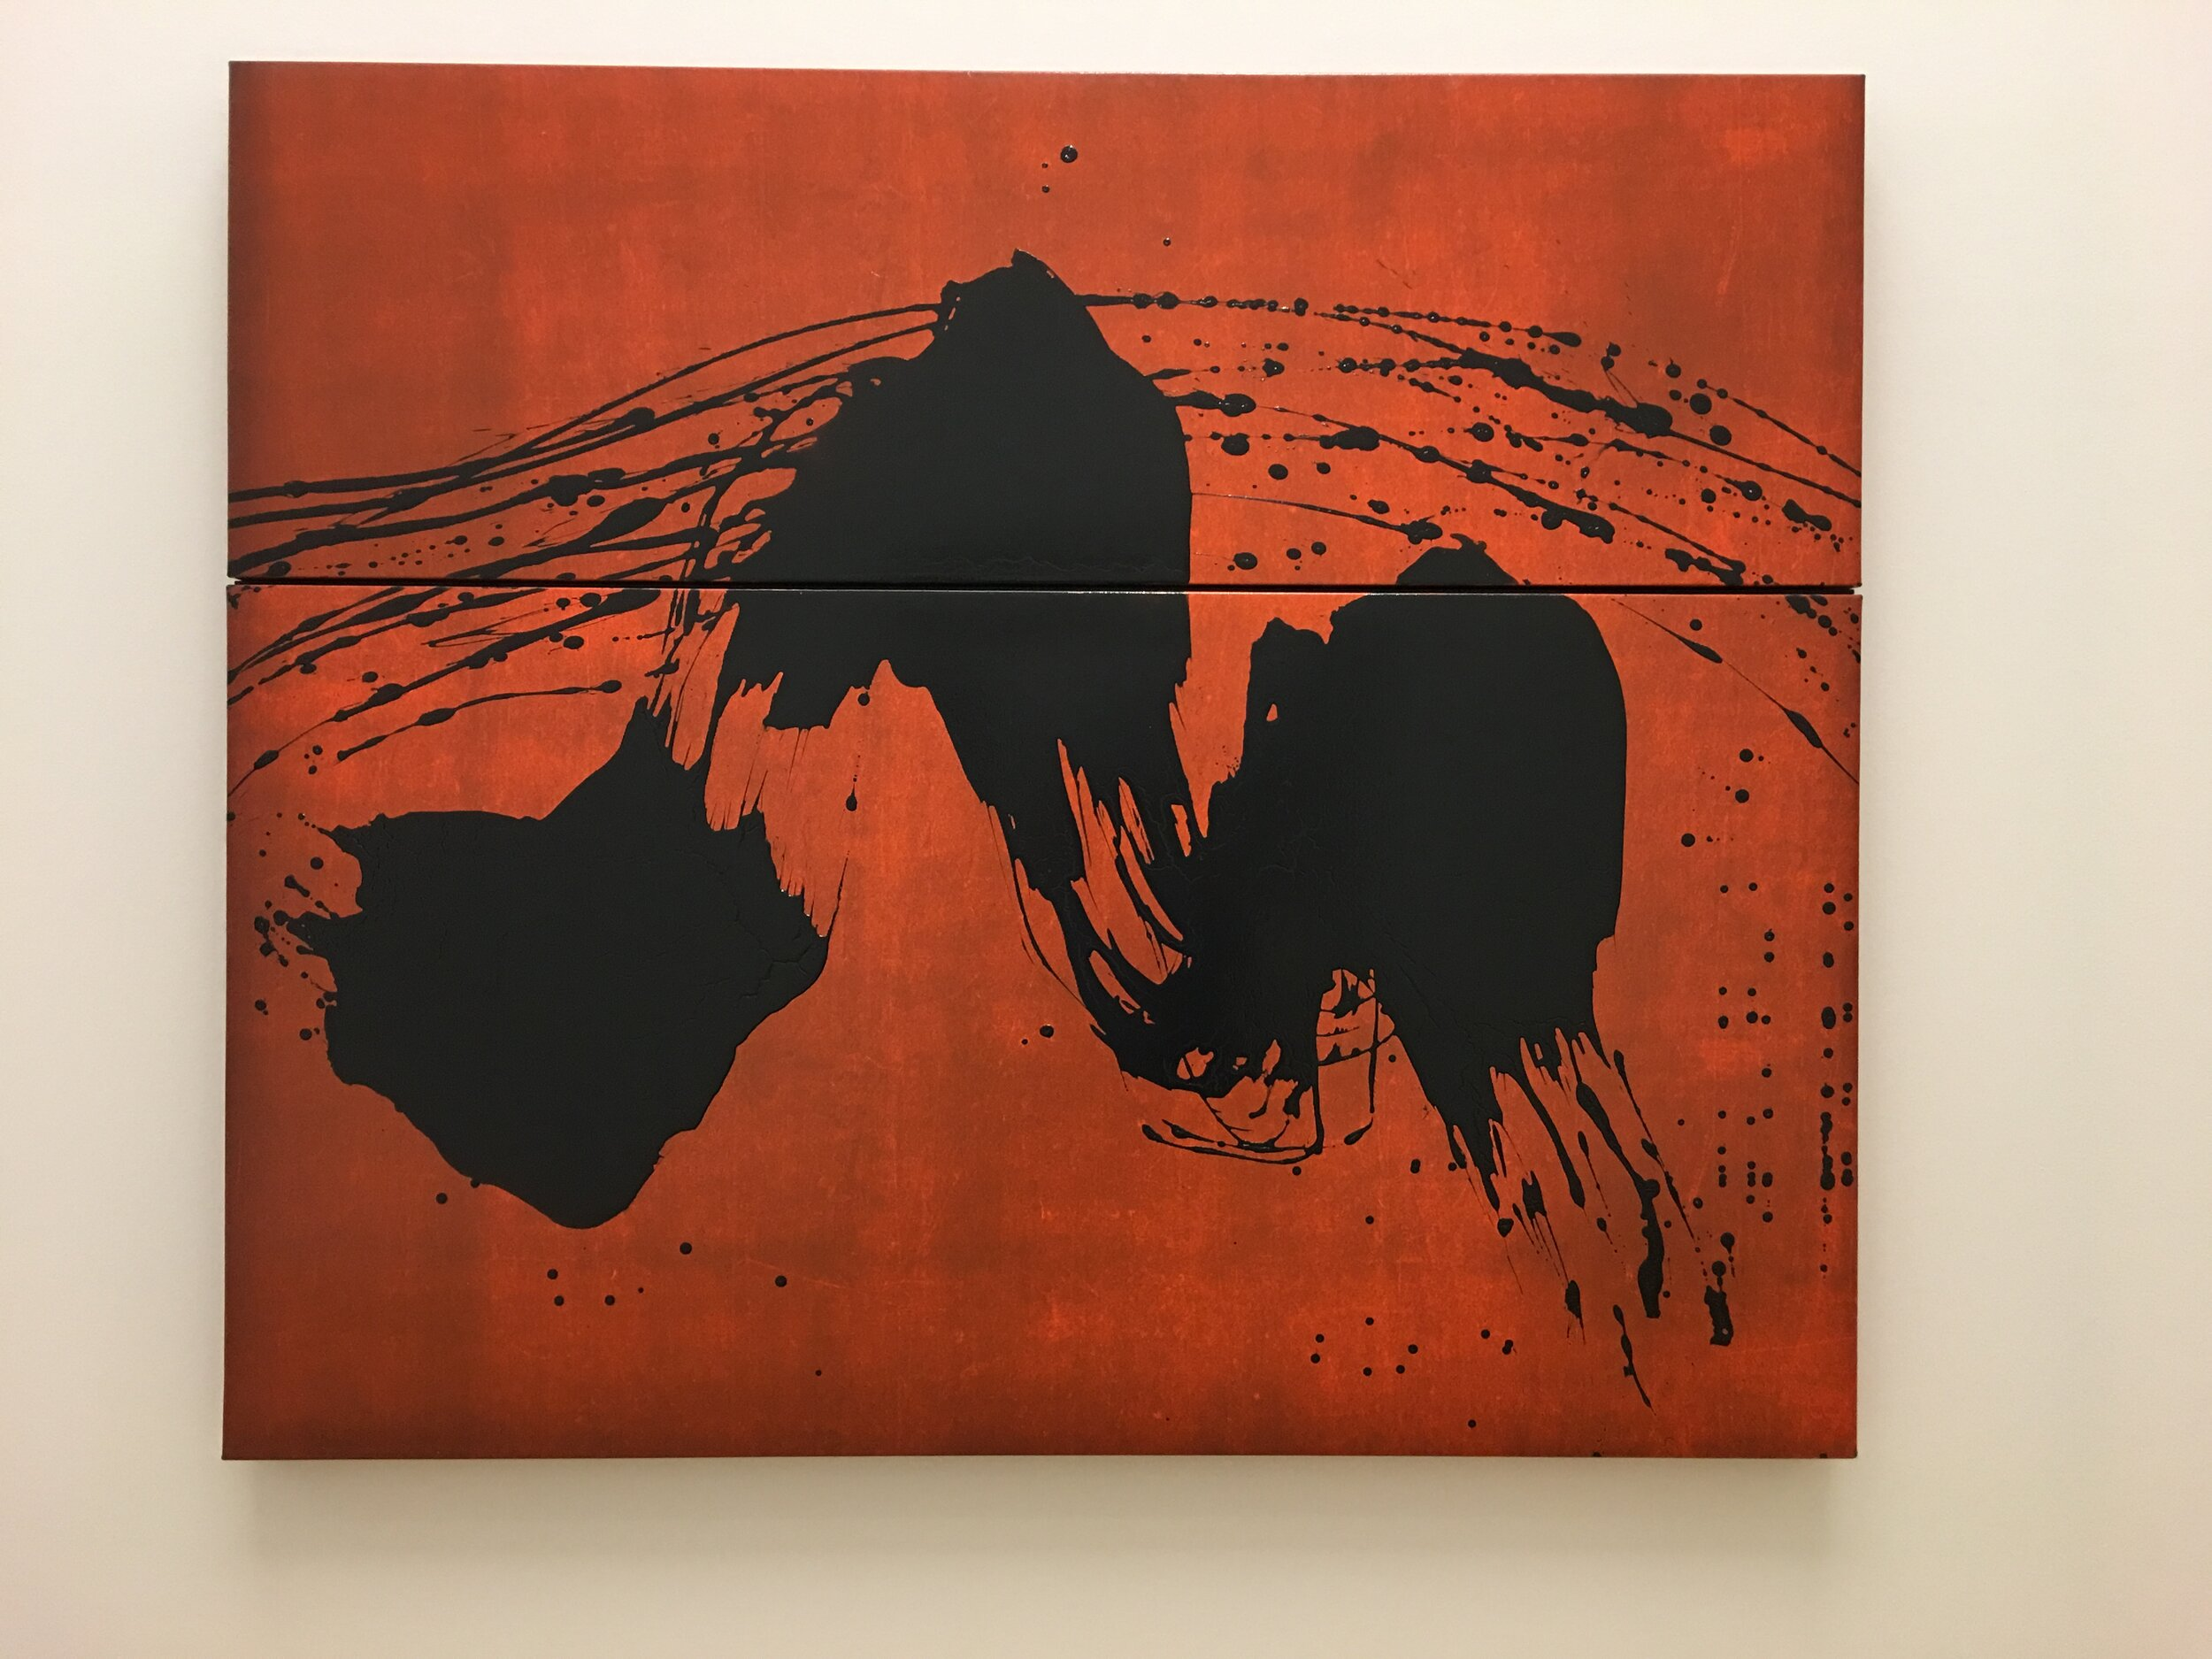 Pilgrimage to the Mountains of Pure Intention, winter 2006, stained ink on canvas, diptych, Fabienne Verdier, Centre Pompidou, Paris (photograph J. Cook)